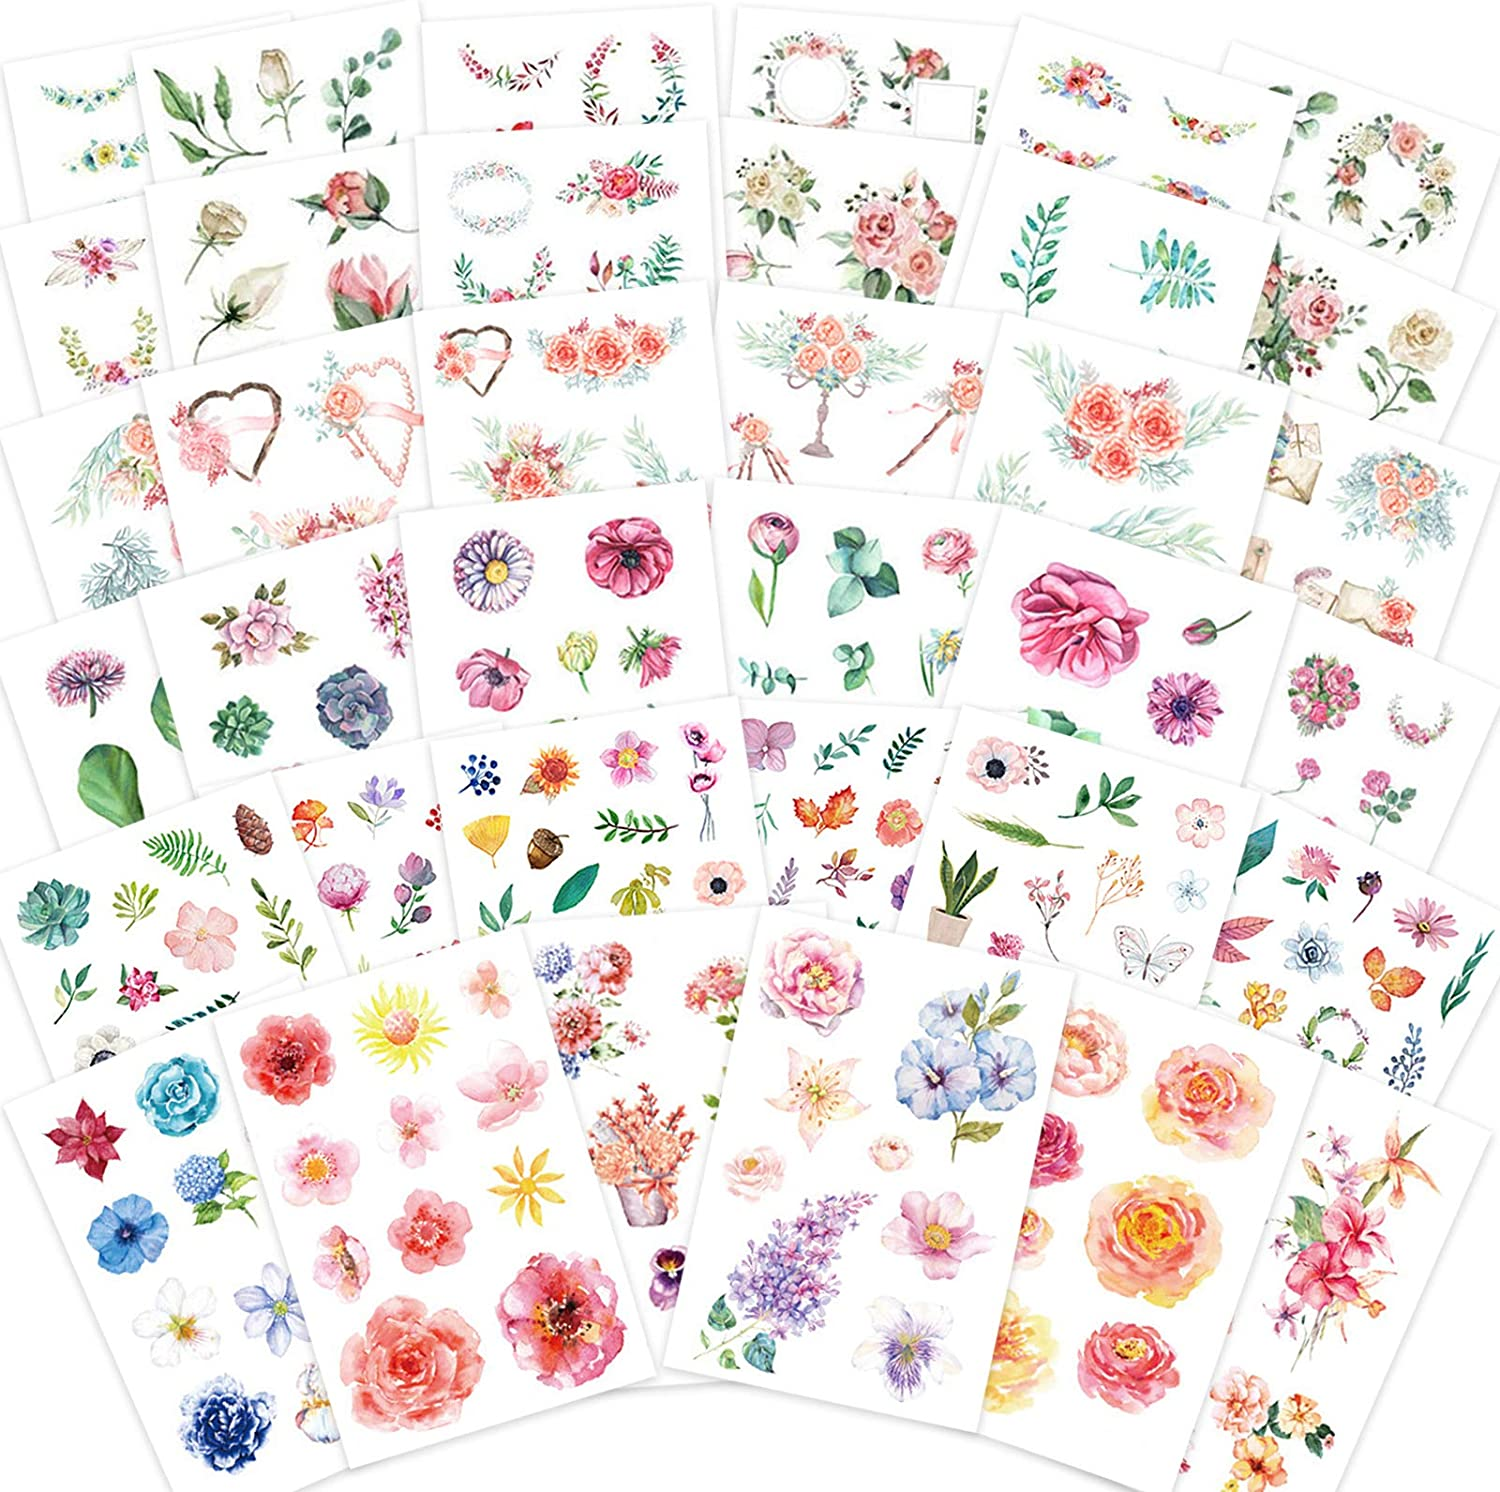 Knaid Watercolor Flower Stickers Set (Assorted 36 Sheets) - Decorative Sticker for Scrapbooking, Kid DIY Arts Crafts, Album, Bullet Journaling, Junk Journal, Planners, Calendars and Notebook